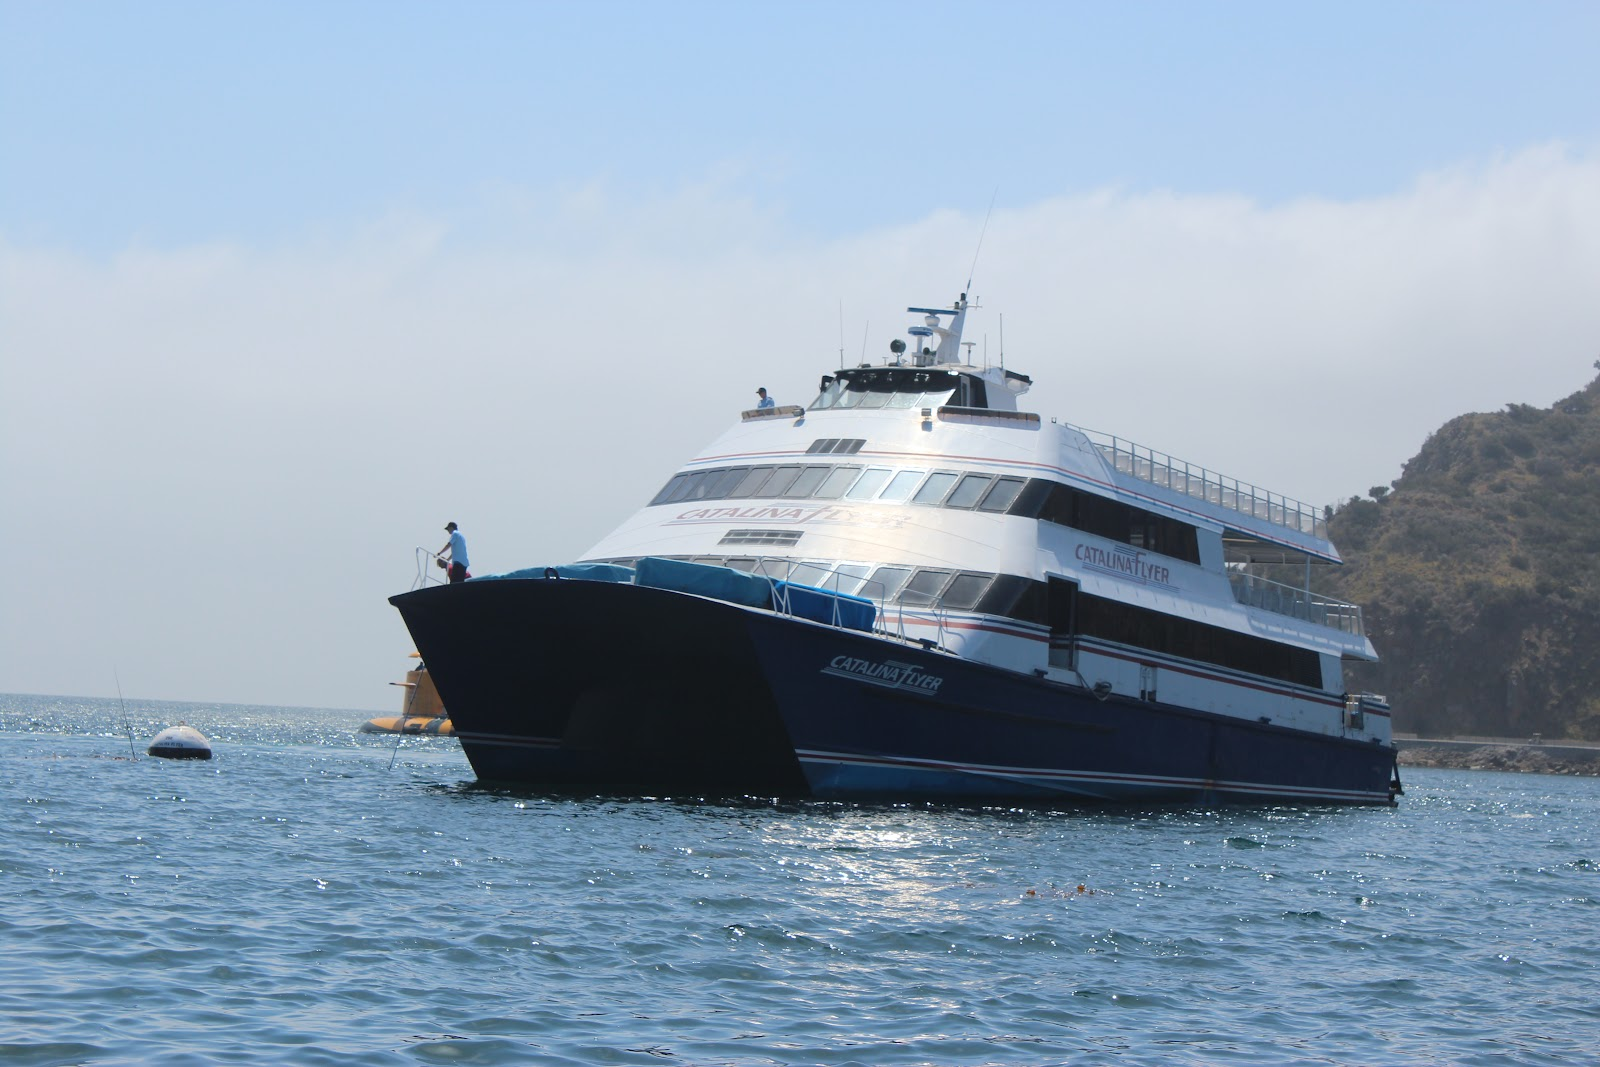 Ferry Schedule To Catalina From Newport Beach